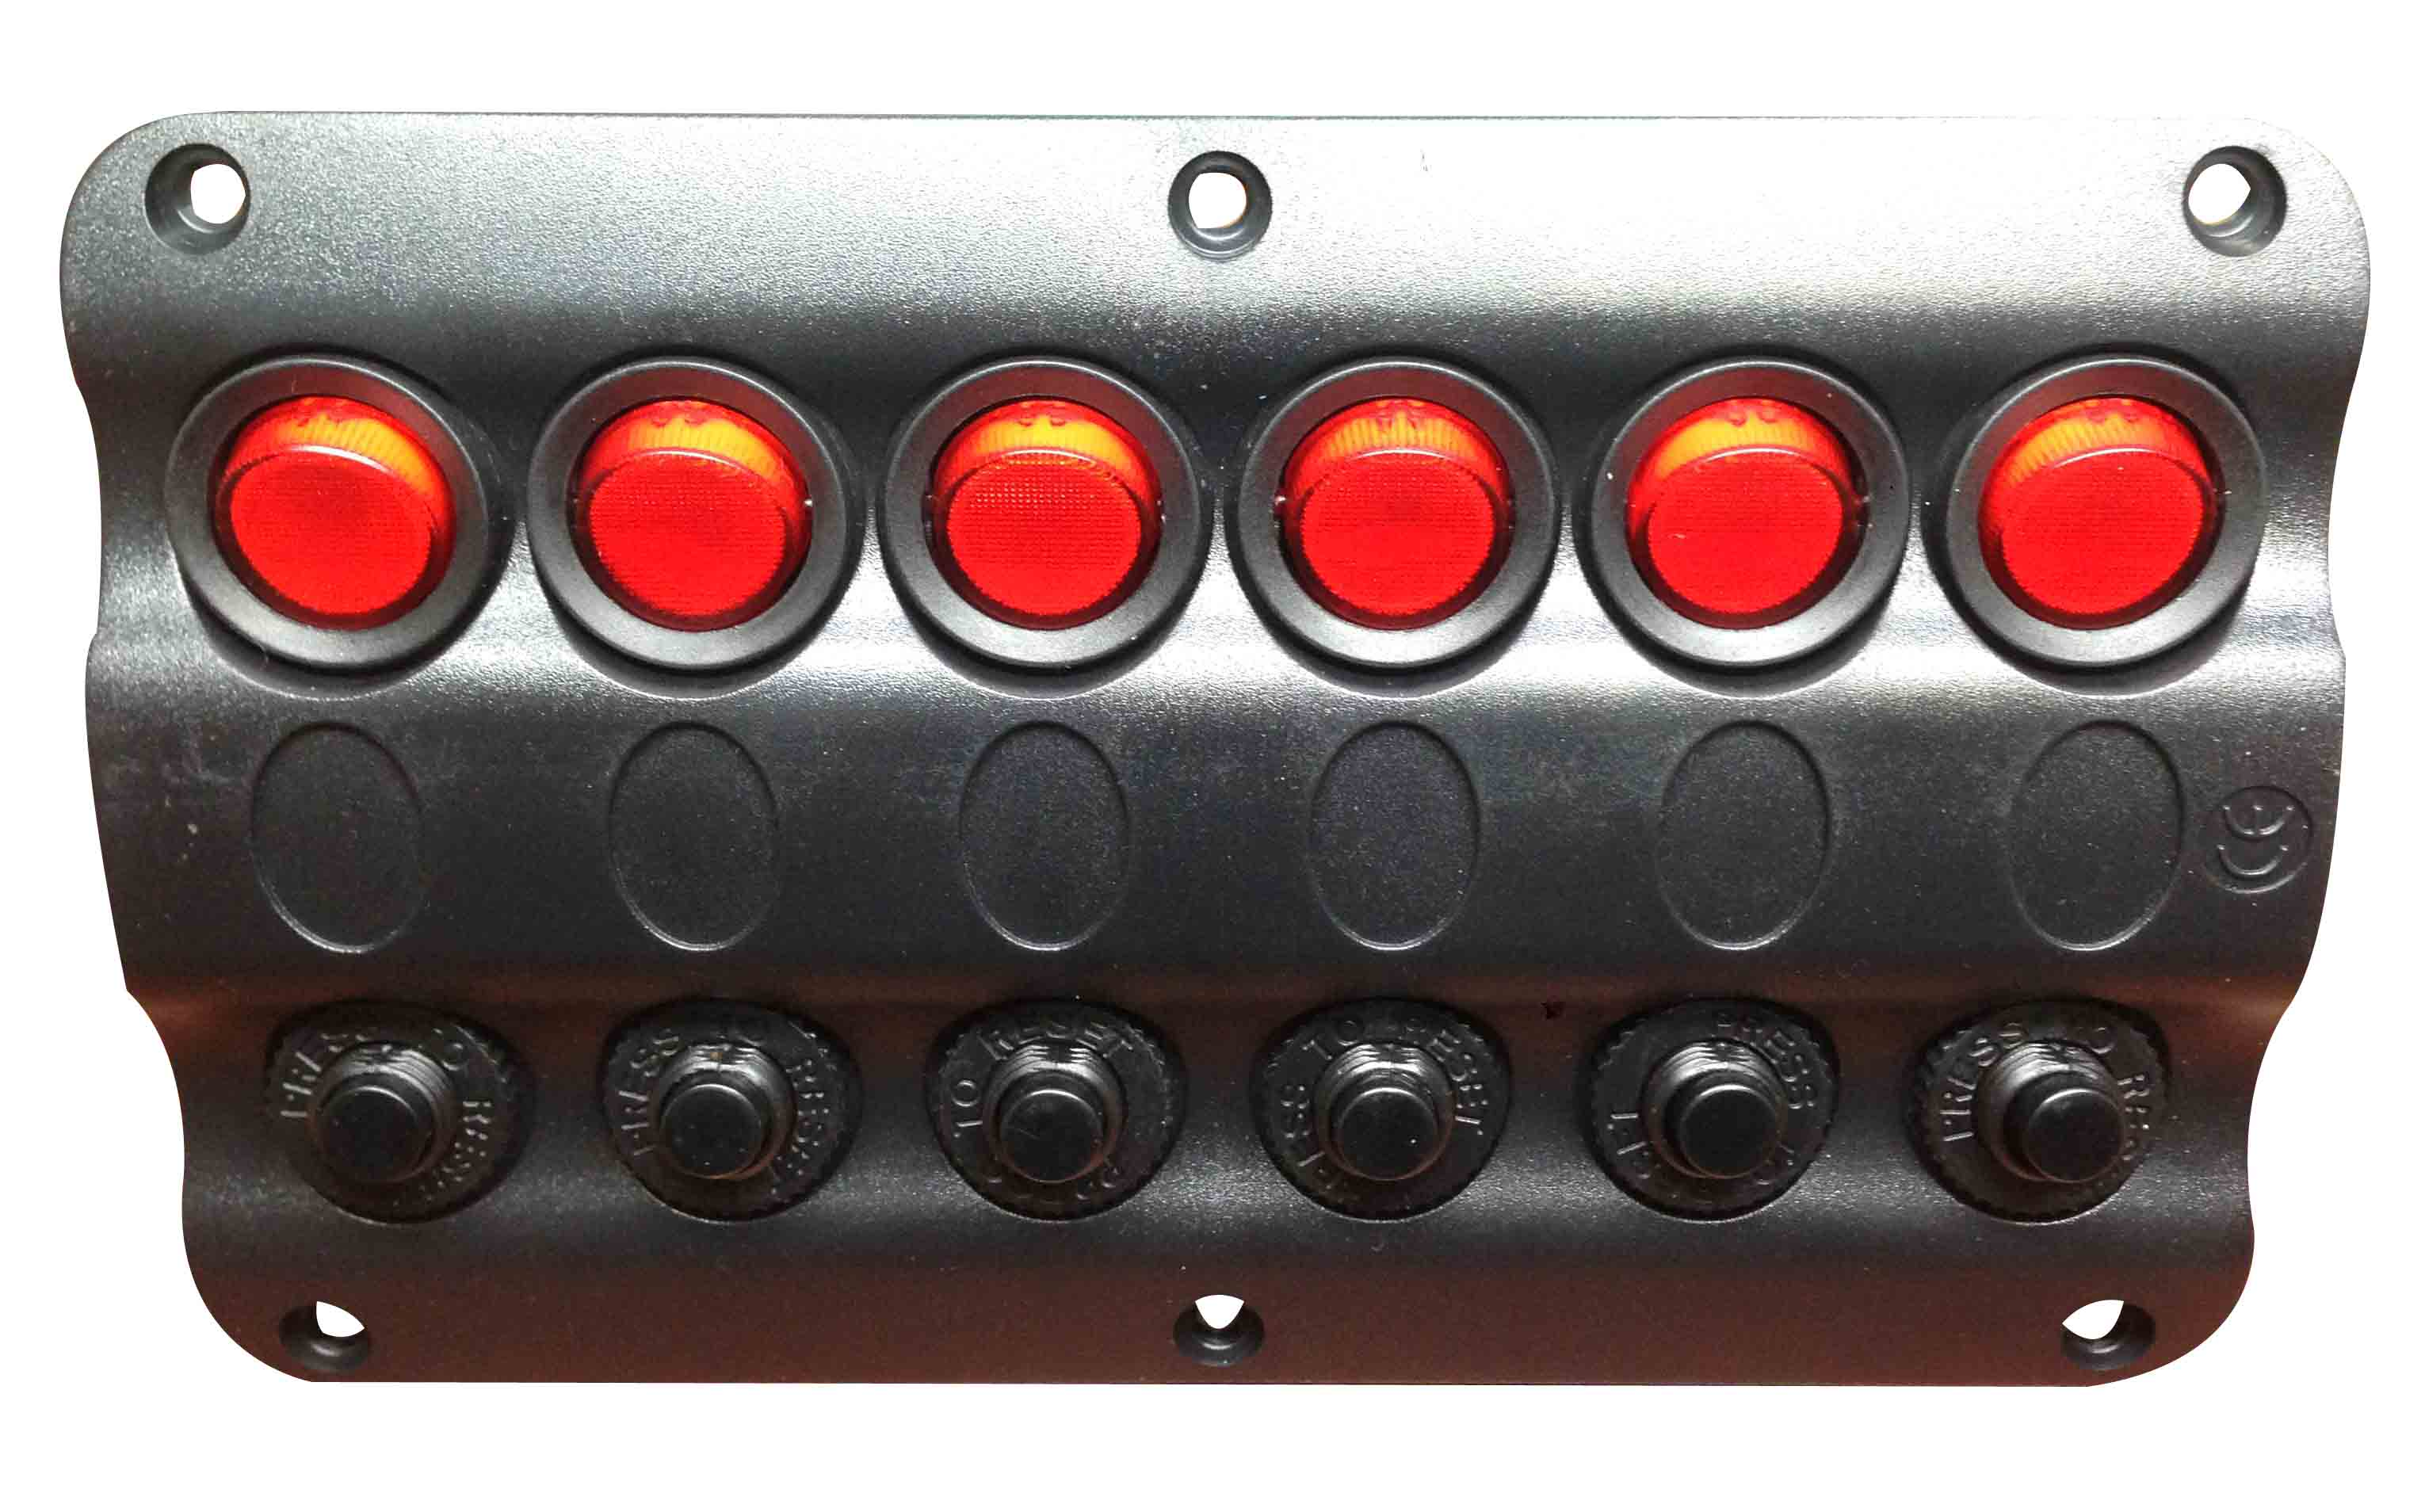 Marine Boat Ip65 Switch Panel 6 Gang Led Switches Circuit Breaker Wiring Diagram For Lights On A Engine Image Brea